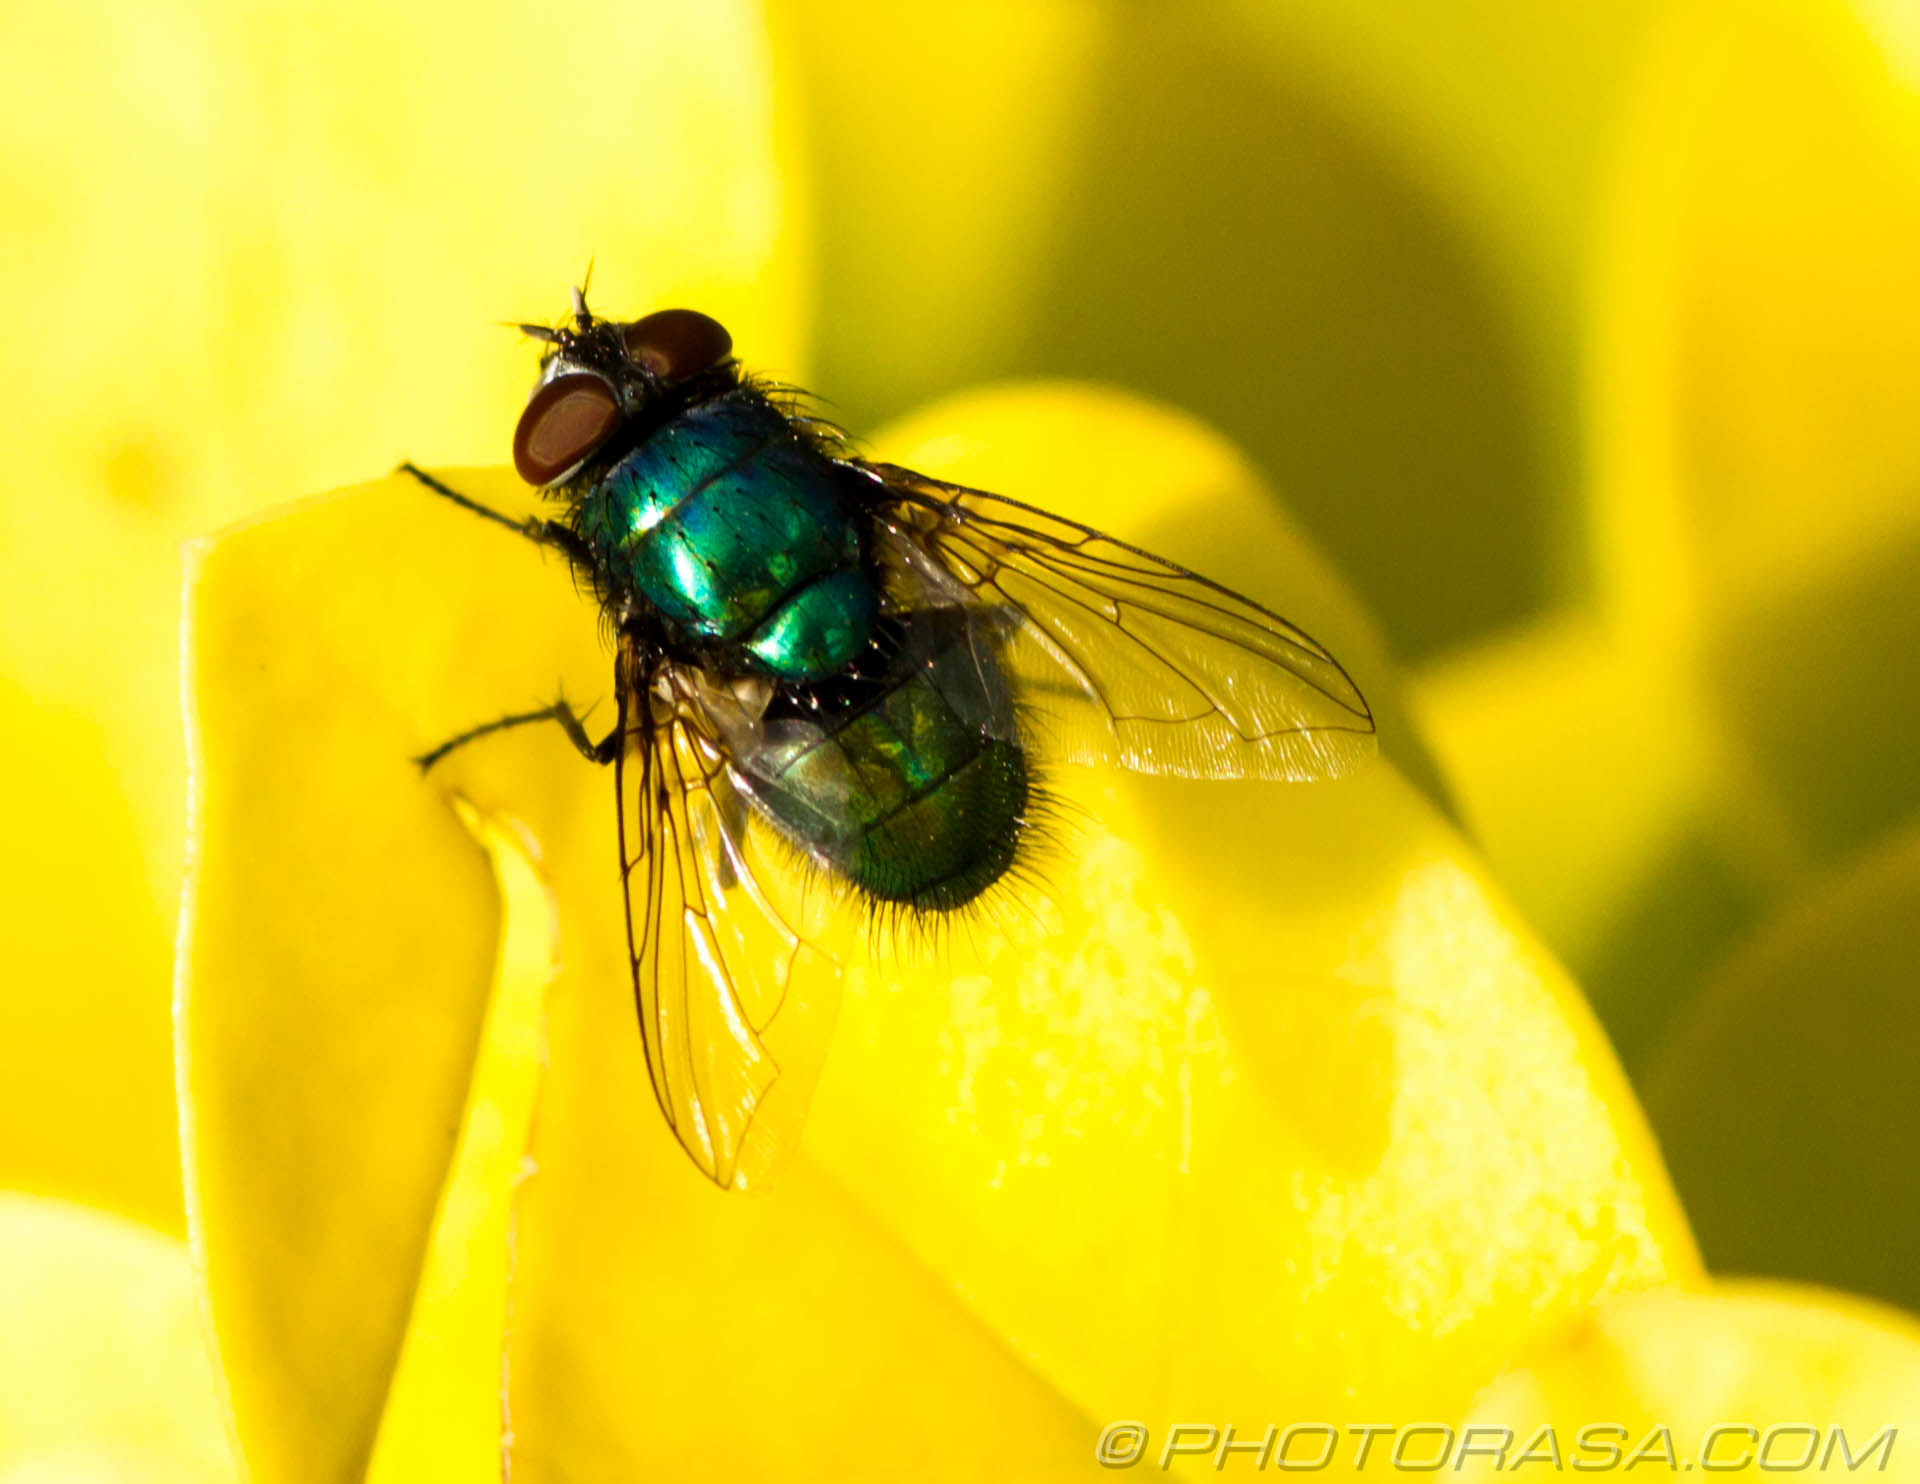 https://photorasa.com/greenbottle-fly-yellow/metallic-green-bottle-fly-on-yellow-plant/